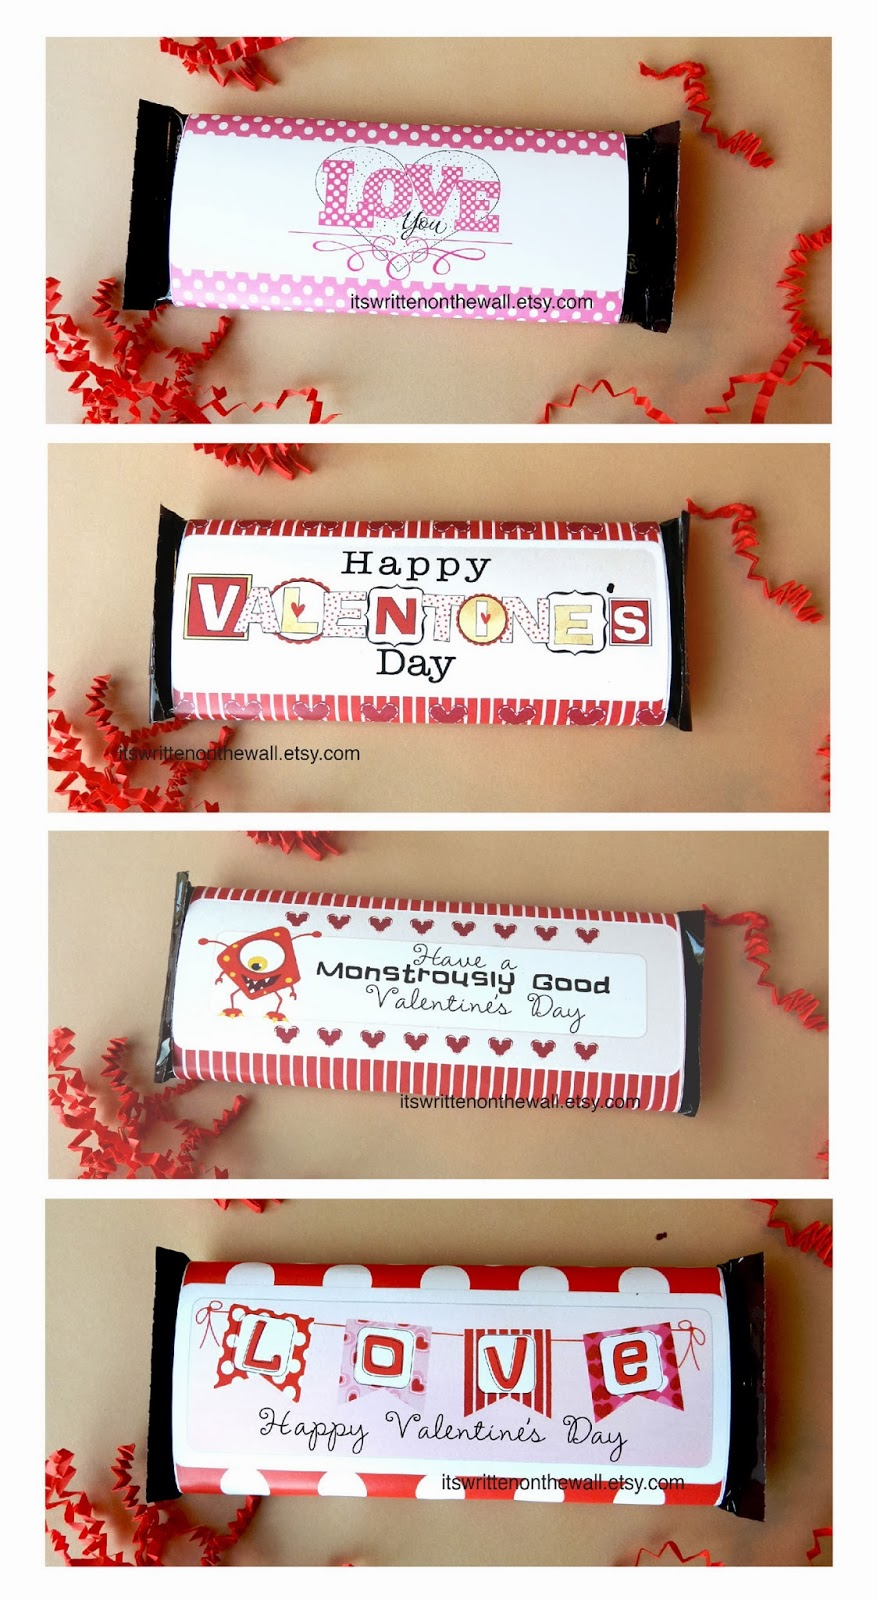 It's Written On The Wall: 12 Valentine's Day Candy Bar